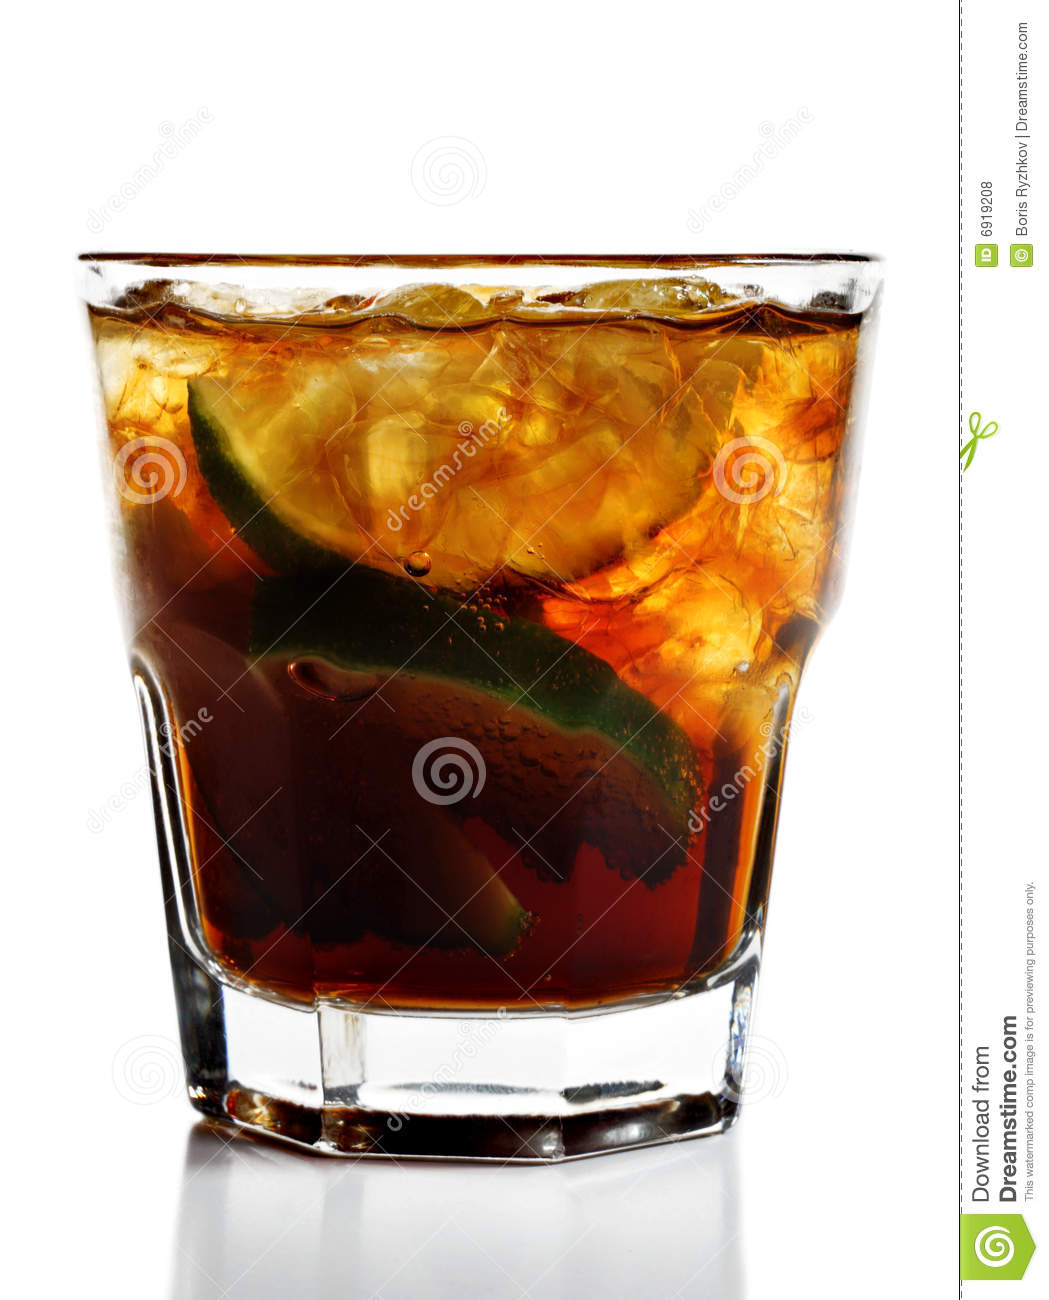 Cuba Libre Cocktail Cocktail Cuba Libre Royalty Free Stock Photos Image